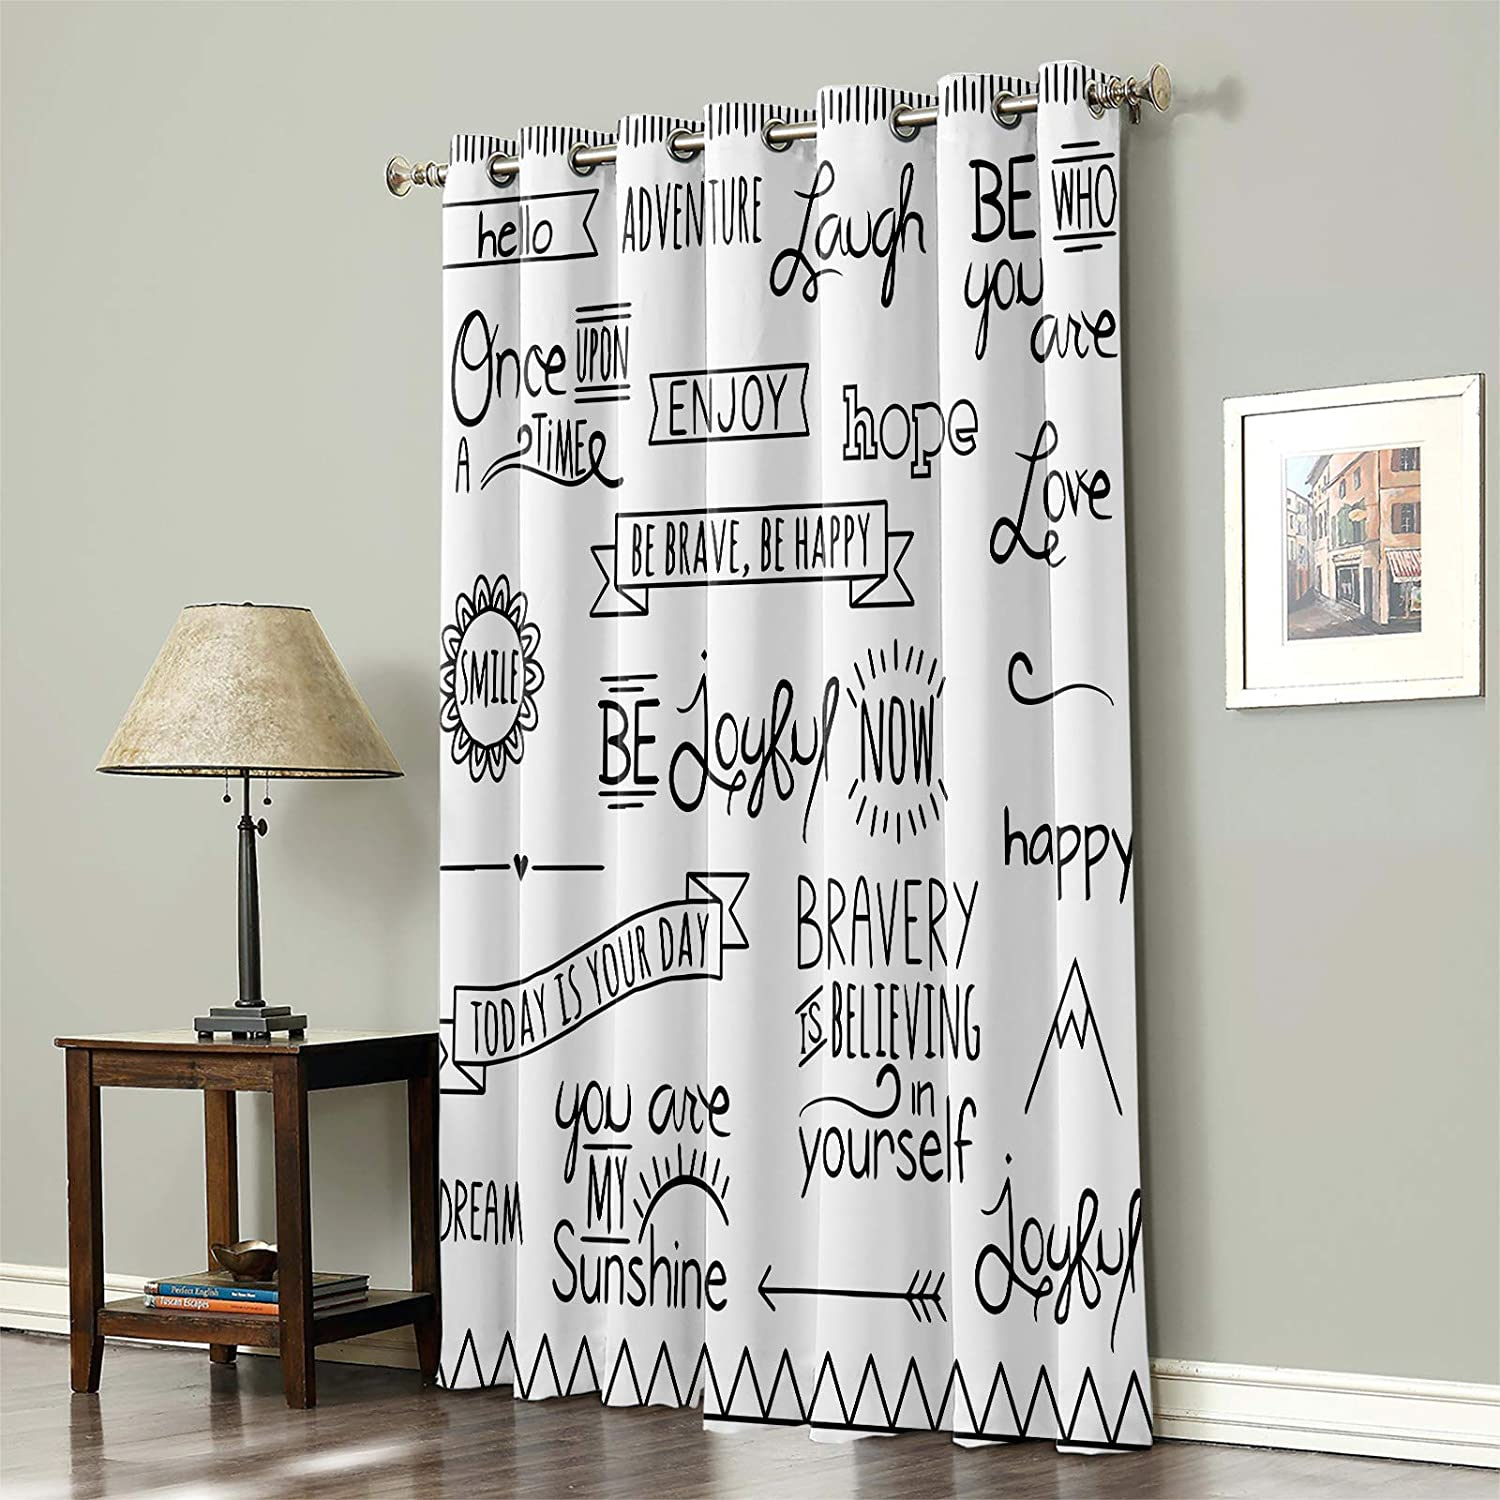 Blackout Curtain for Bedroom Inspirational Positive 予約 Heal Energy テレビで話題